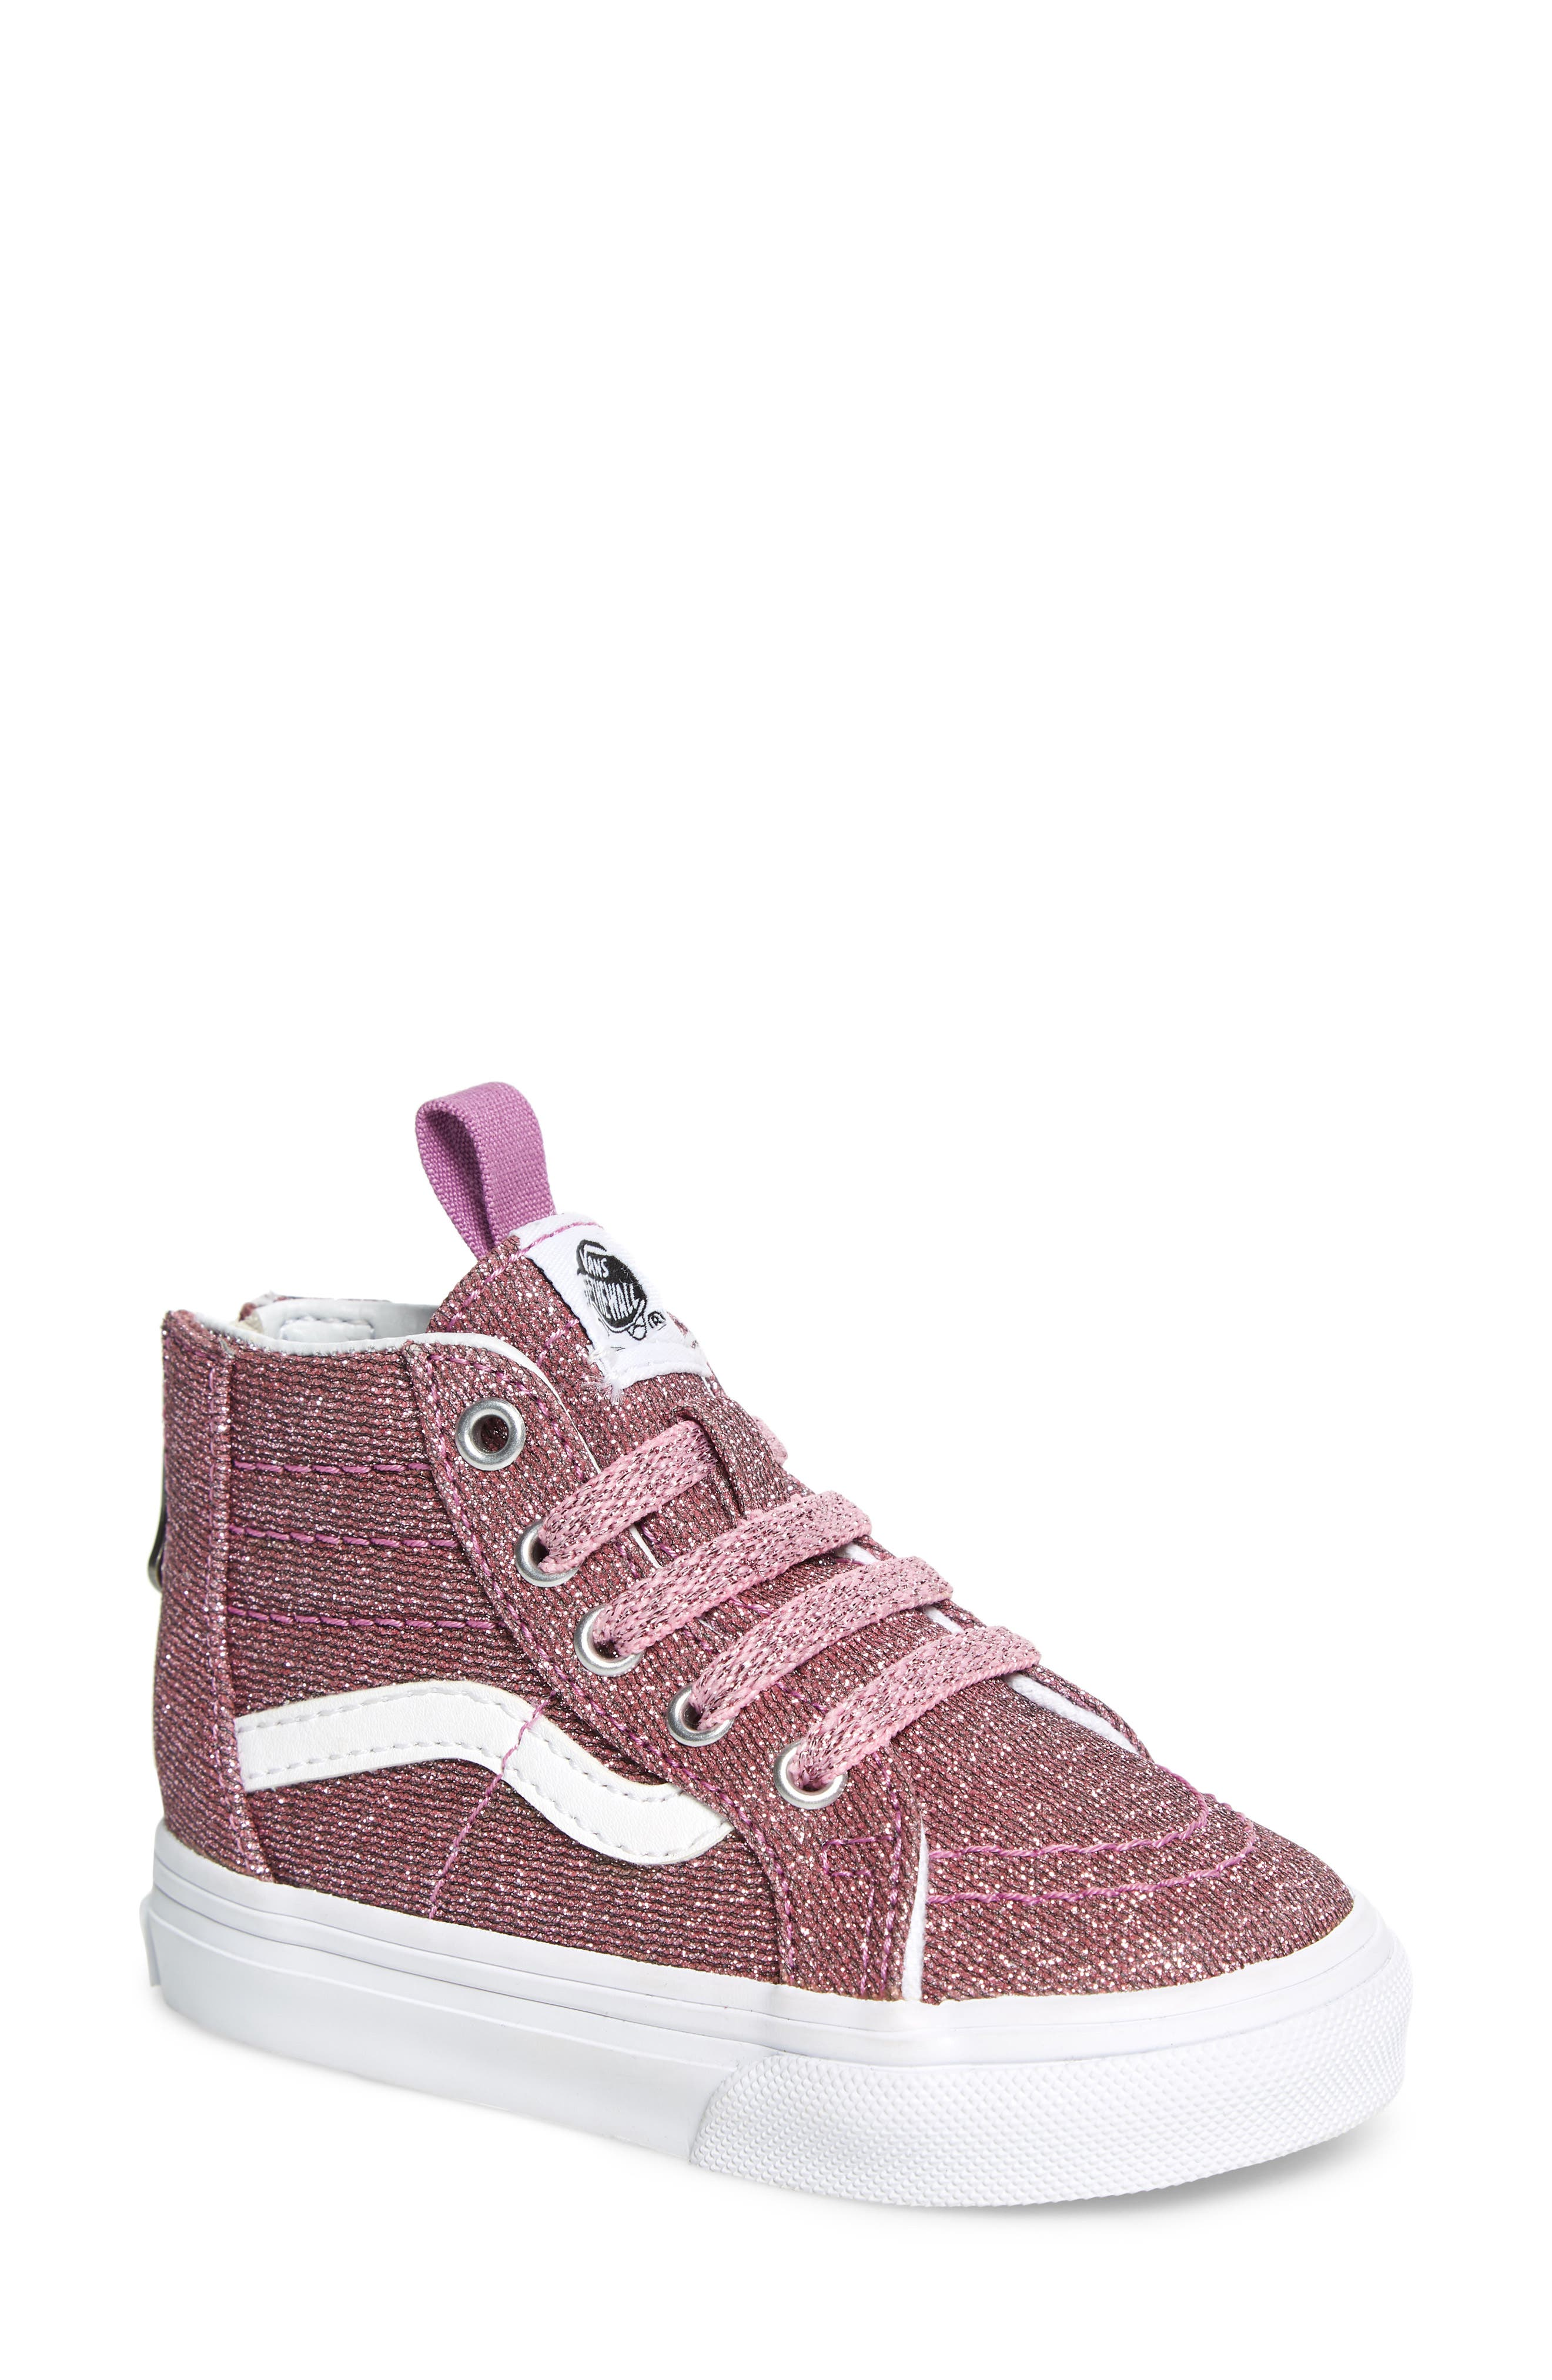 Sk8-Hi Zip Sneaker,                         Main,                         color, LUREX GLITTER PINK/ TRUE WHITE